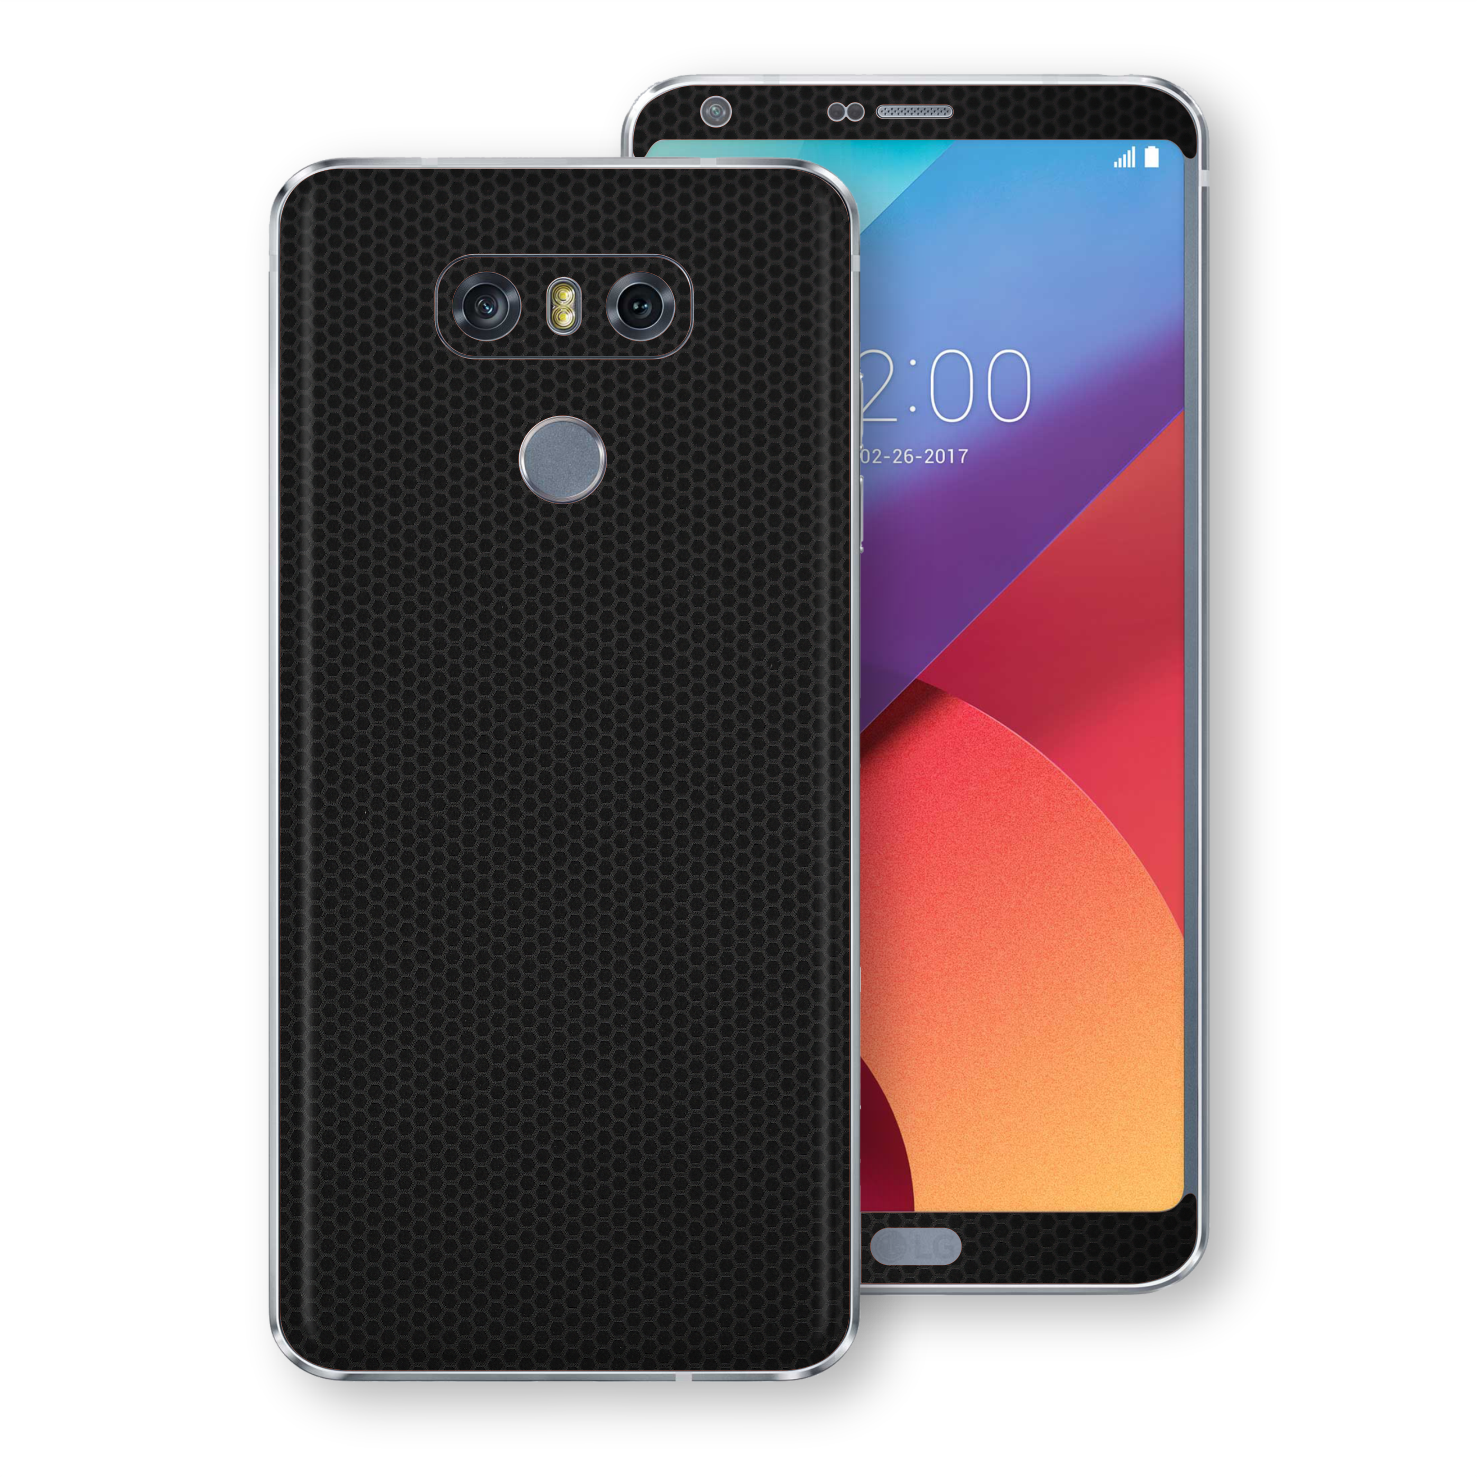 LG G6 Black Matrix Textured Skin Wrap Decal 3M by EasySkinz